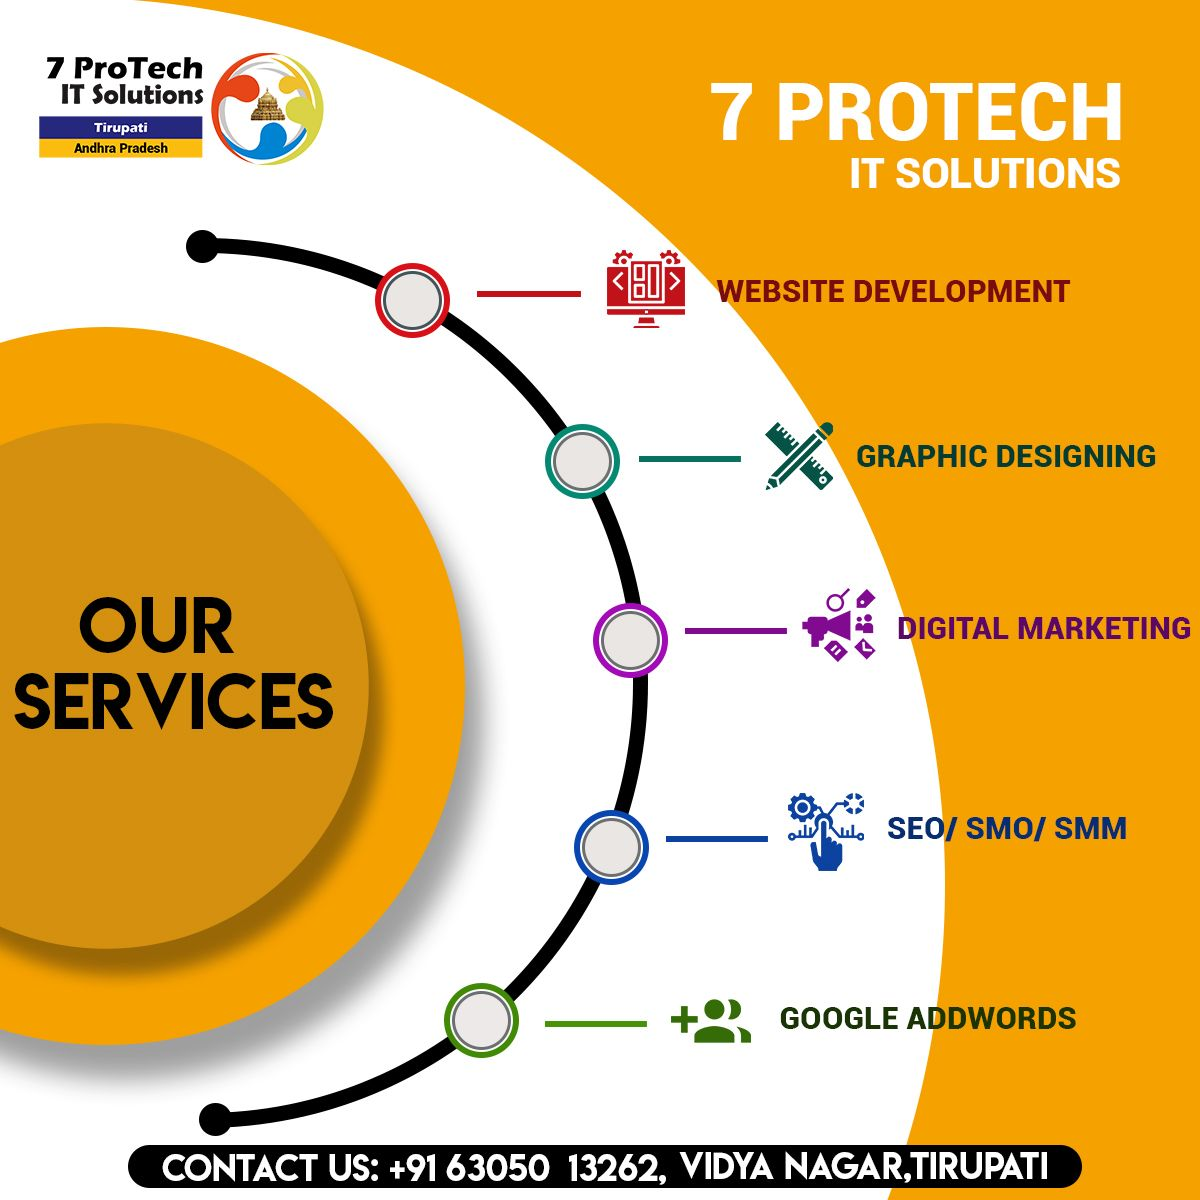 7protech It Solutions Powered By Usa Based It Profound Is One Of The Leading Company In Tirupati Wh Digital Marketing Graphic Design Digital Marketing Services